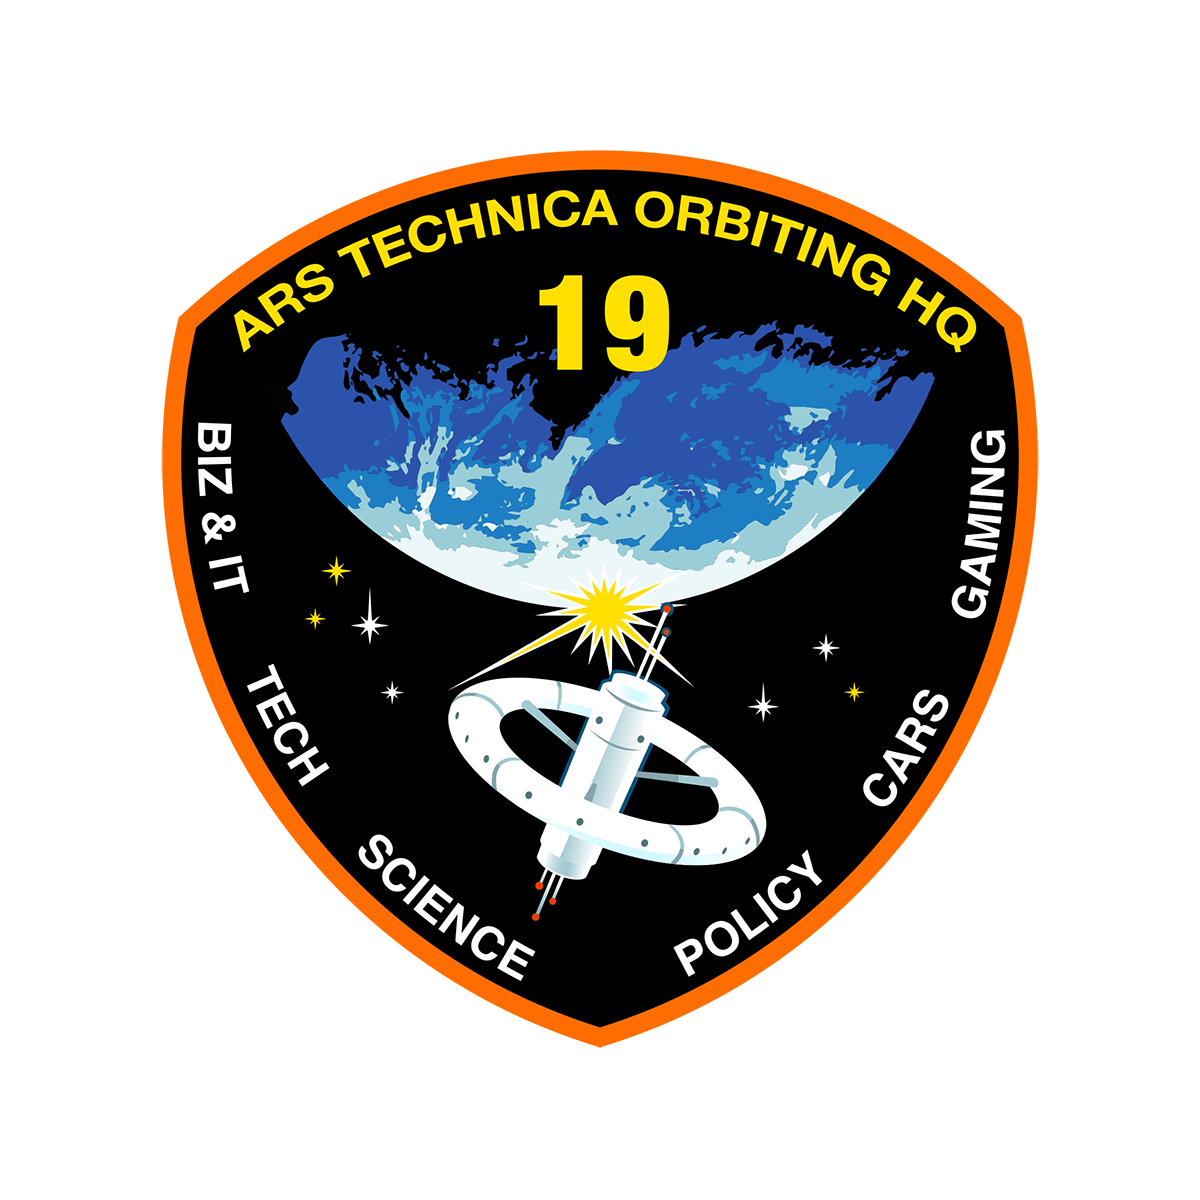 Ars Technica Mission Patch Artwork